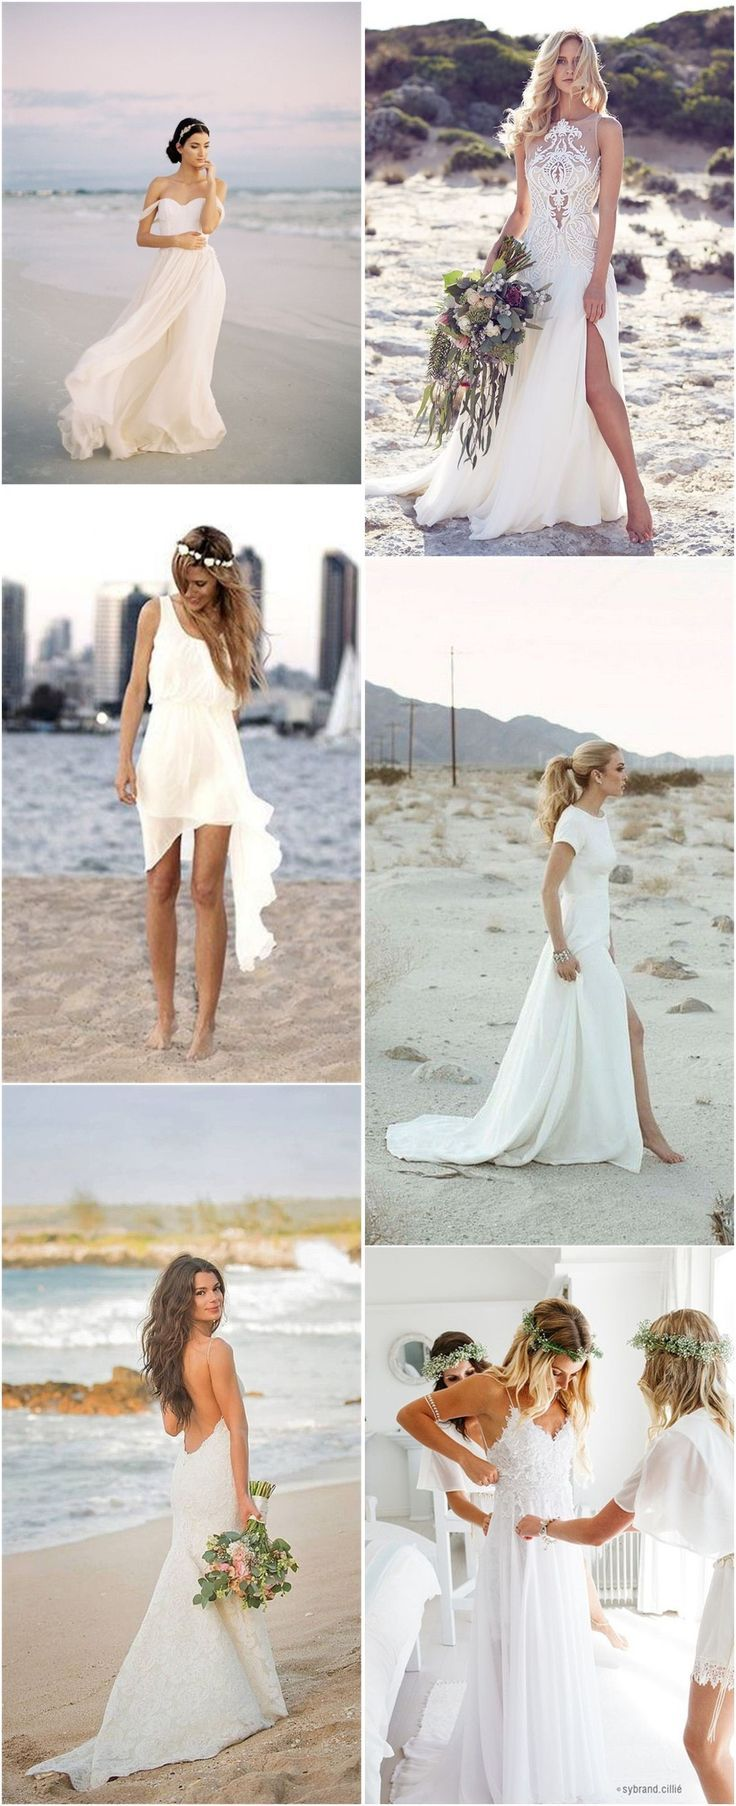 Top beach wedding dresses ideas to stand you out dress ideas